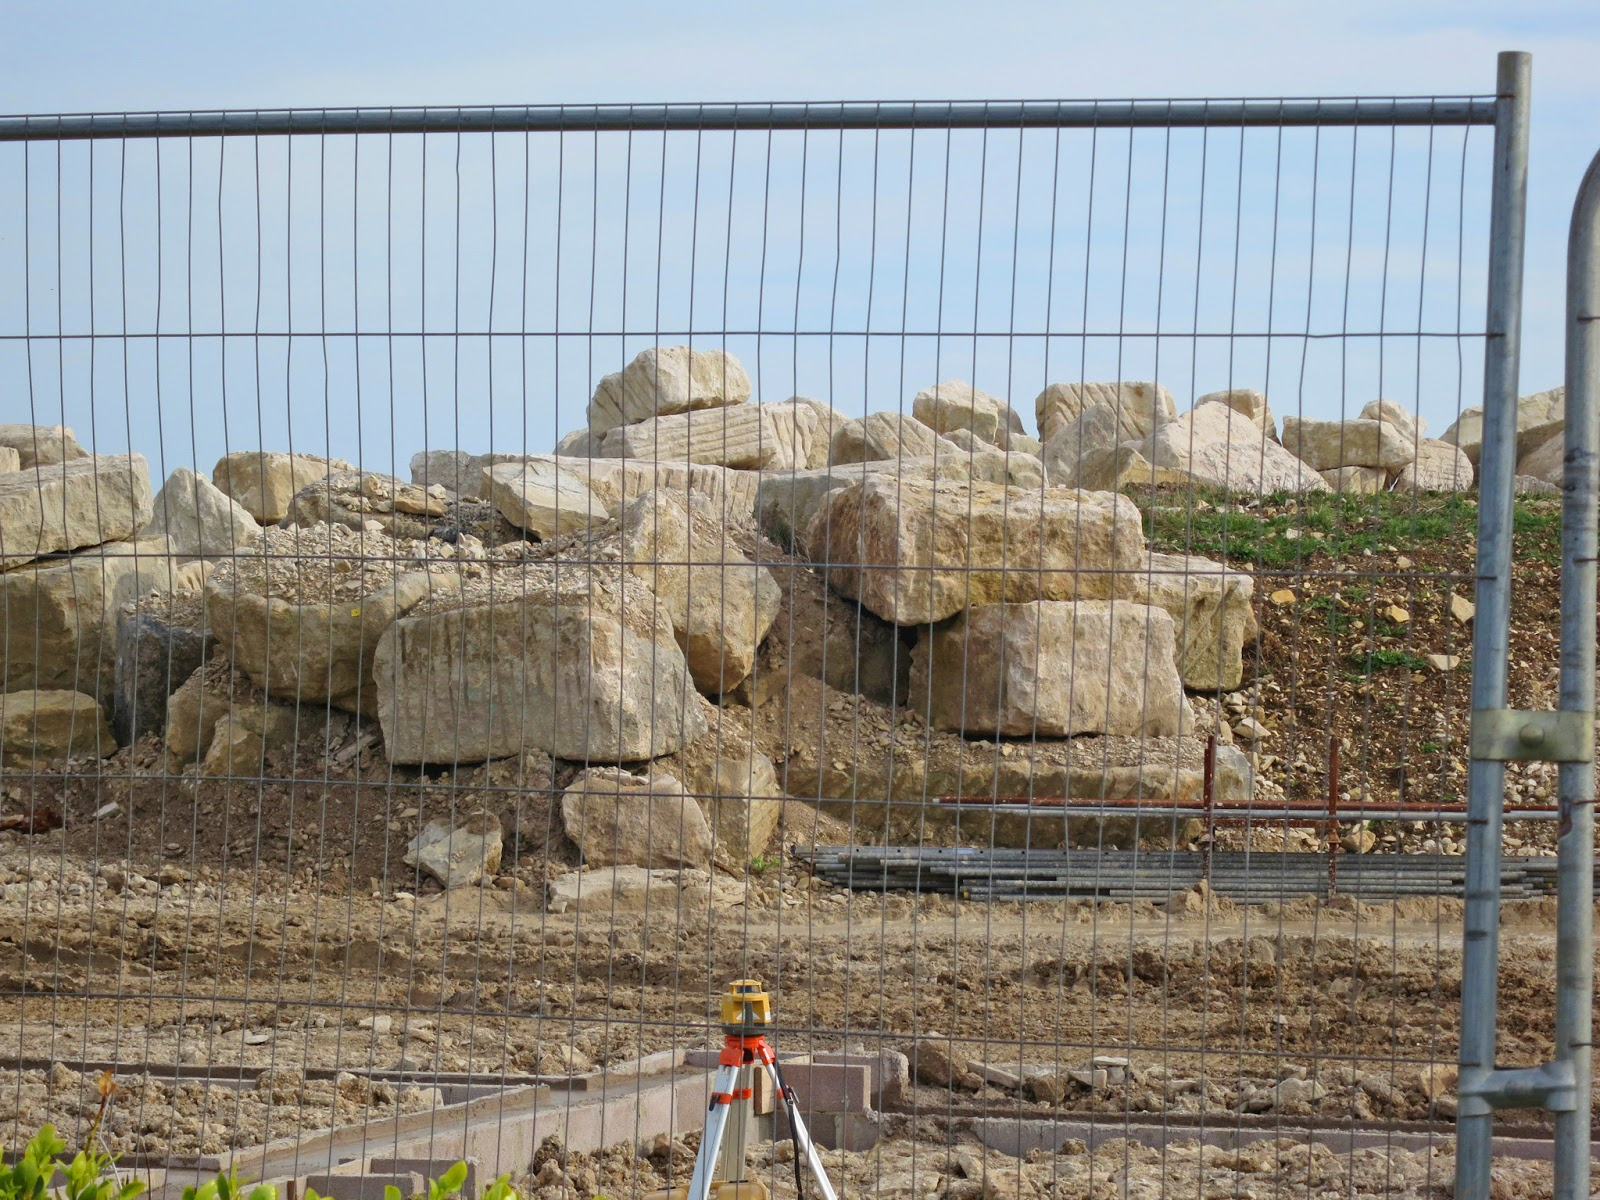 Huge, hewn rocks of Portland stone behind a fence with theodolite in foreground.